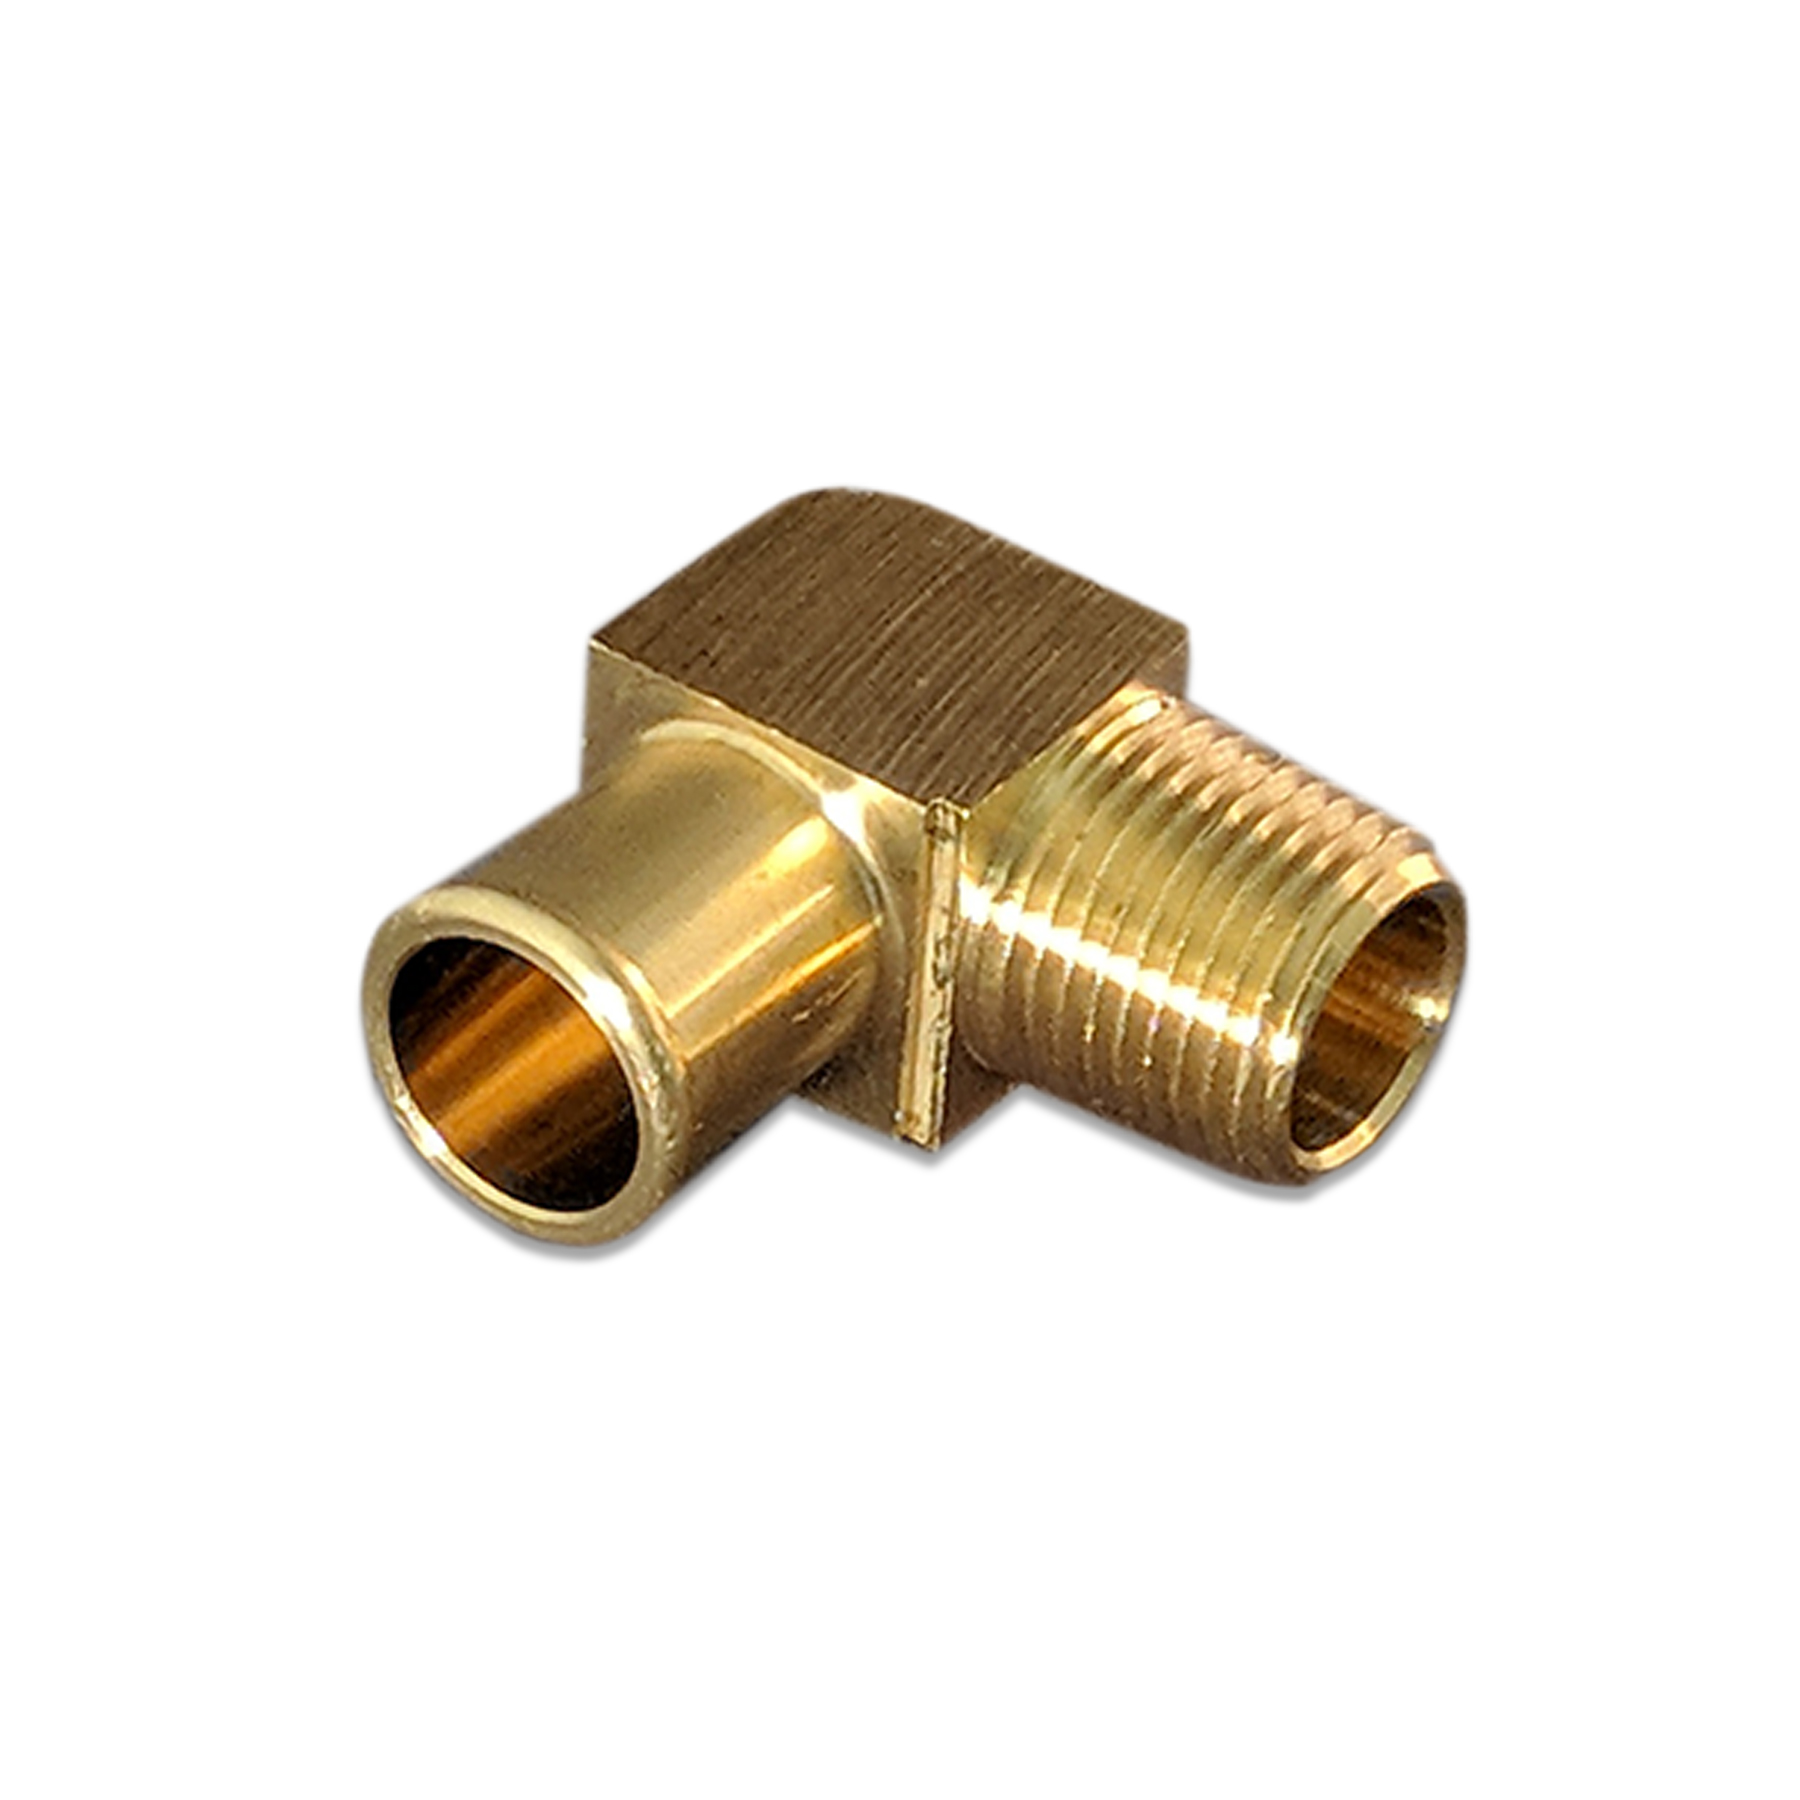 Brass Elbow Fitting 90 Degree,Barb, 3/4 X 1/2 (M)NP, HH